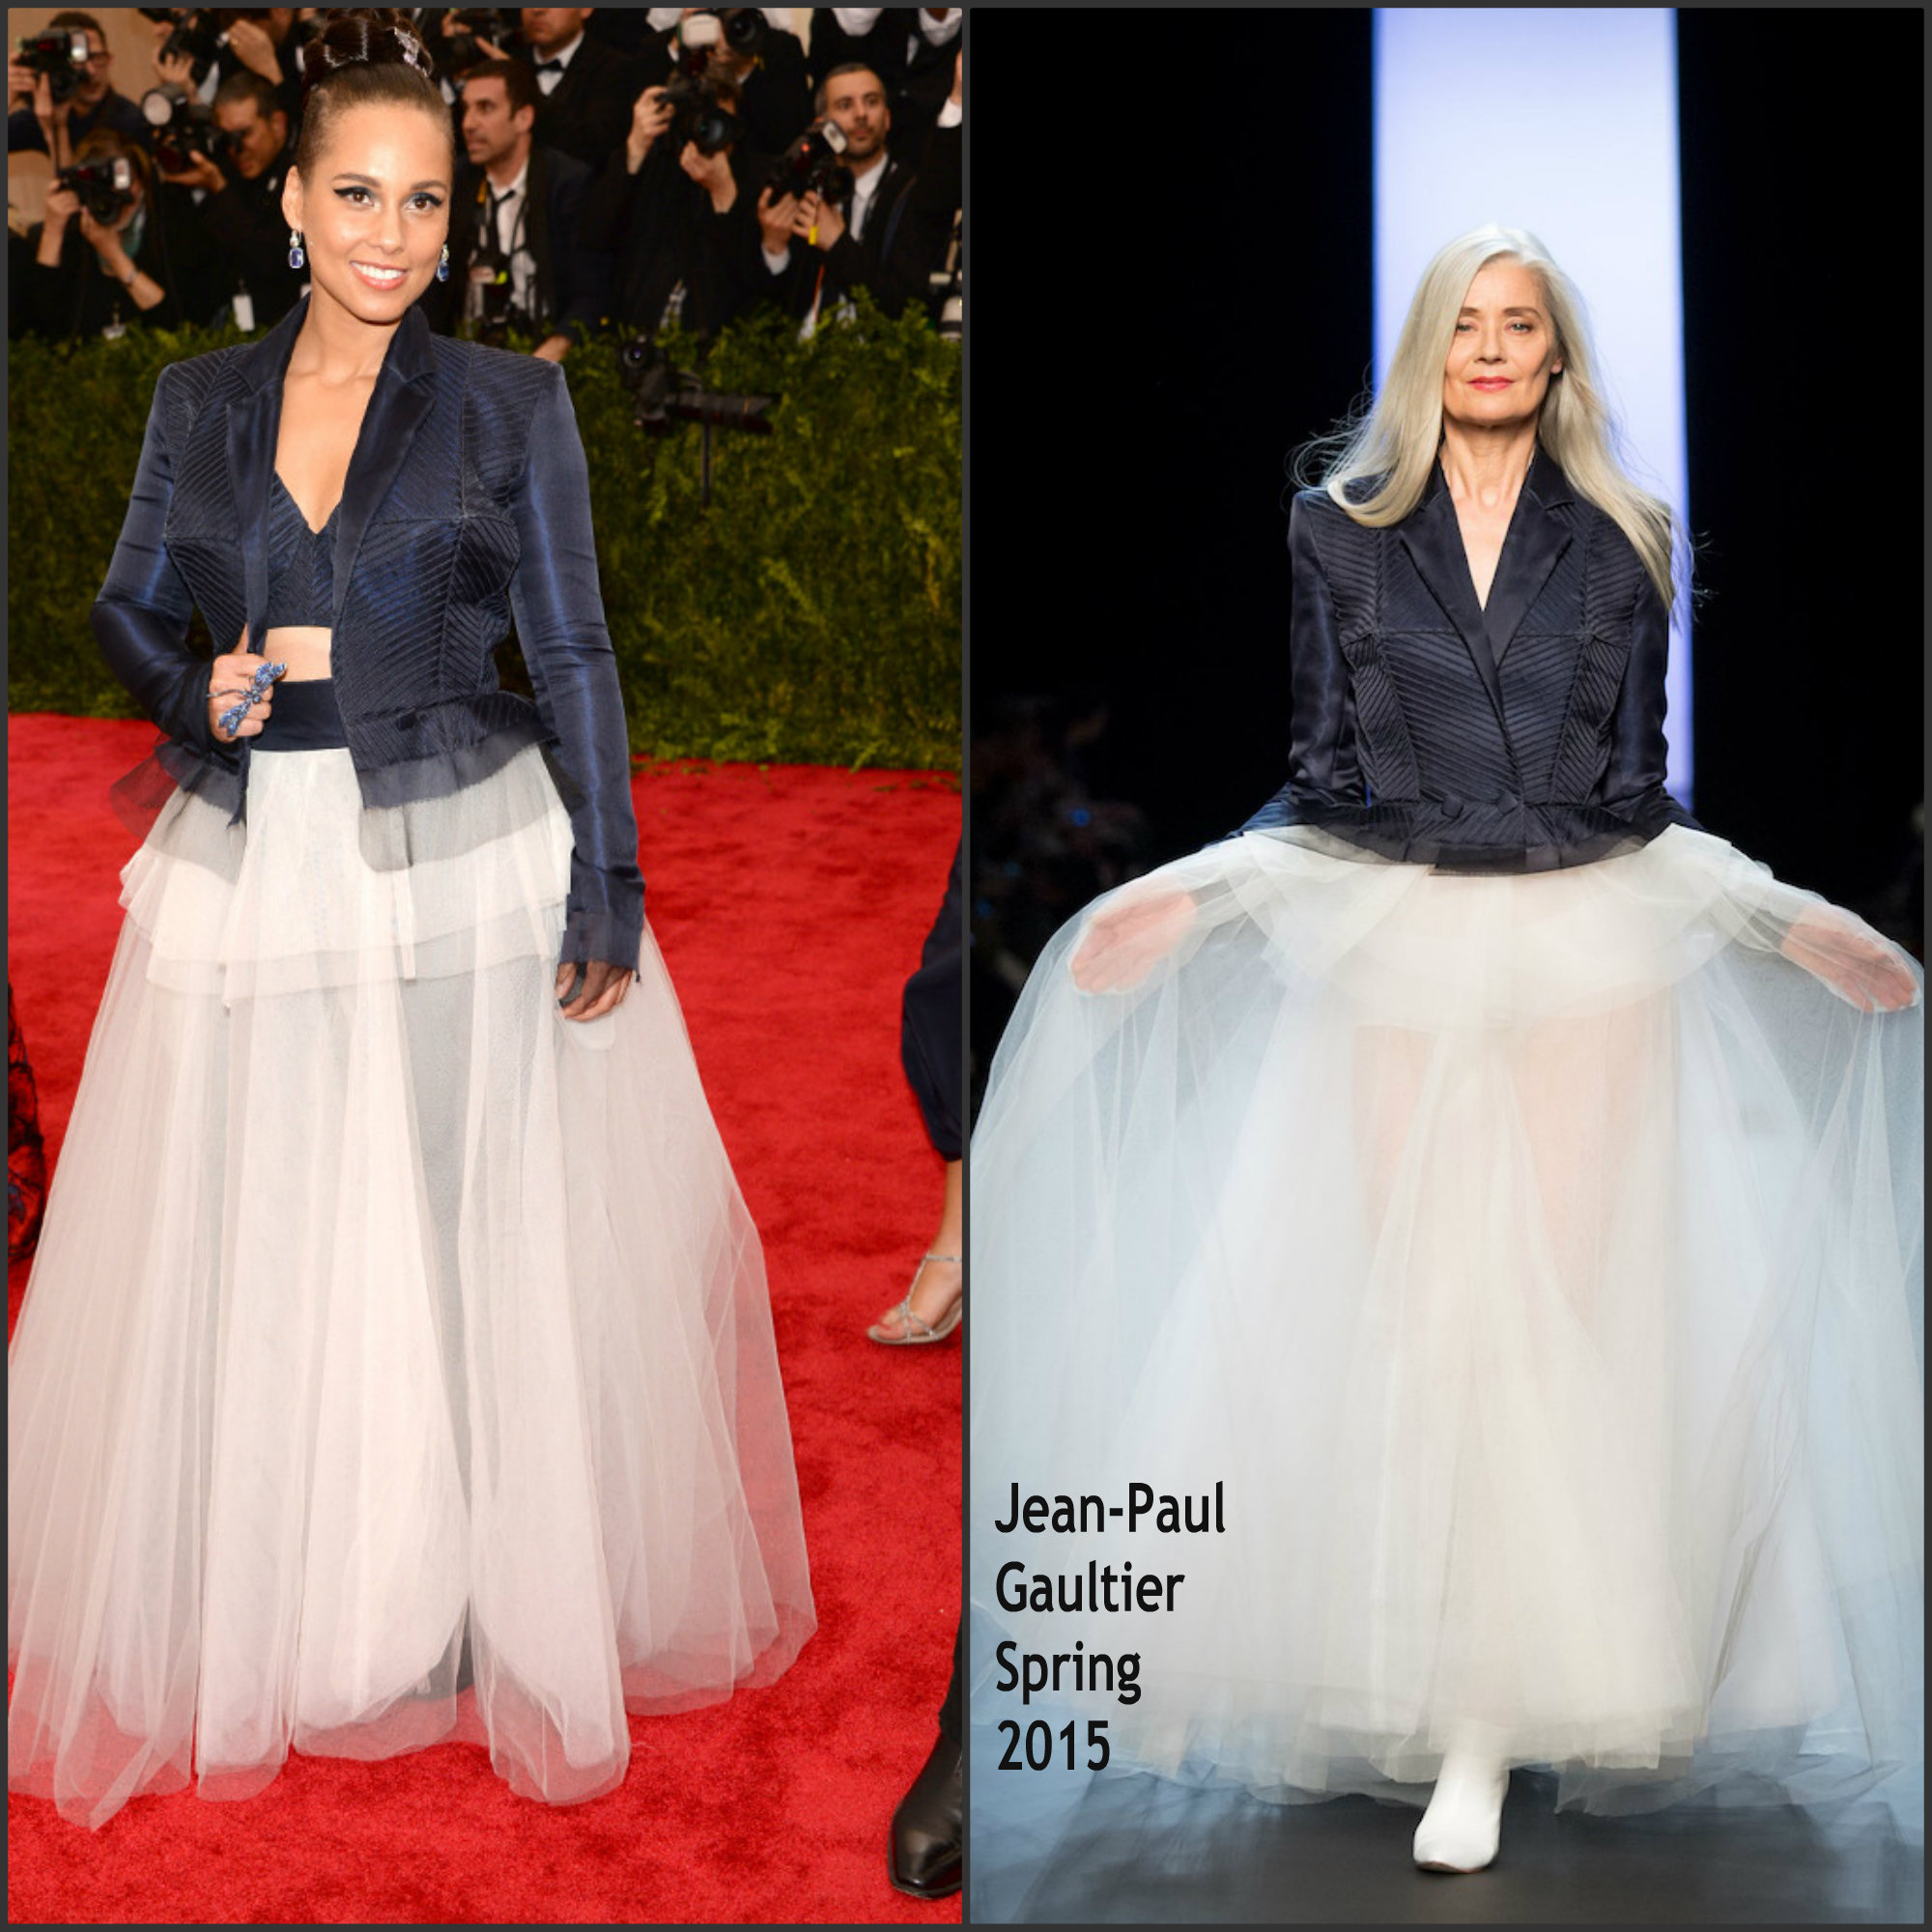 alicia-keys-in-jean-paul-gaultier-couture-at-the-2015-met-gala